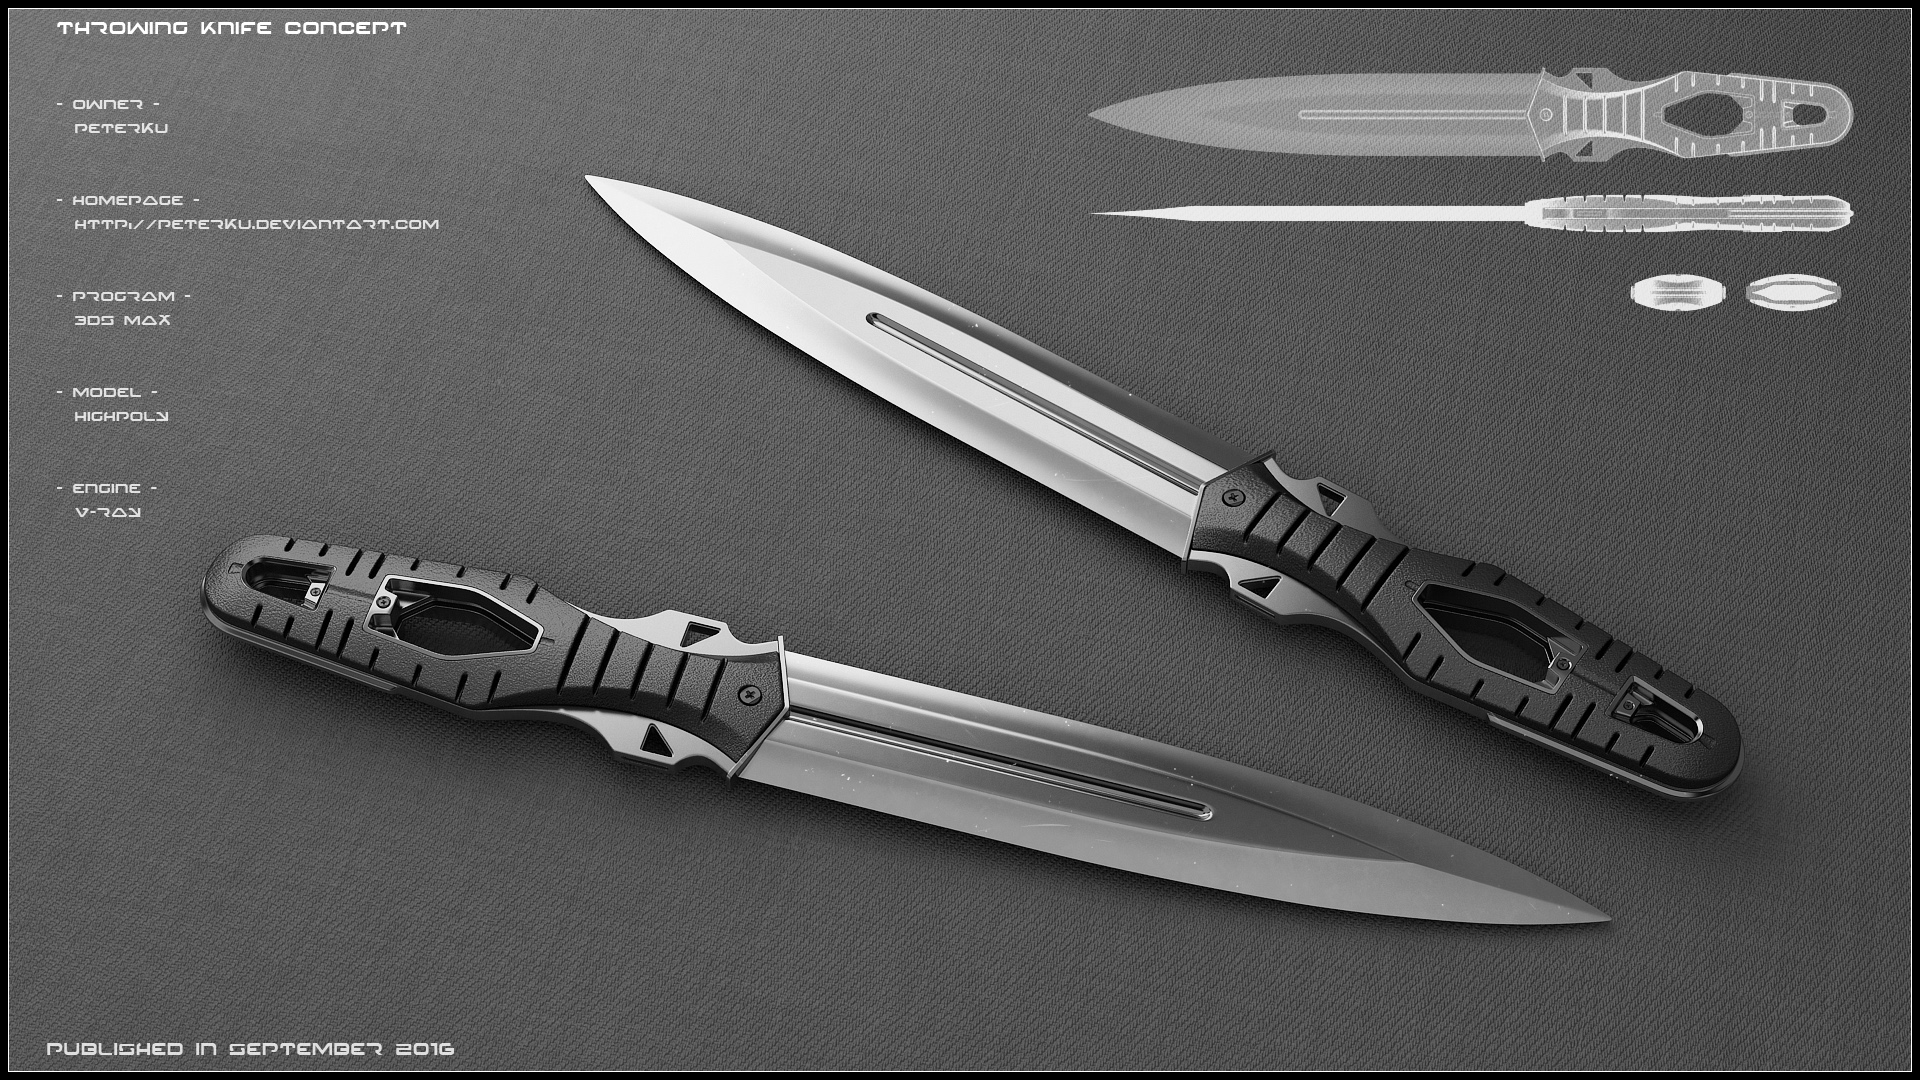 throwing knife concept by -#main